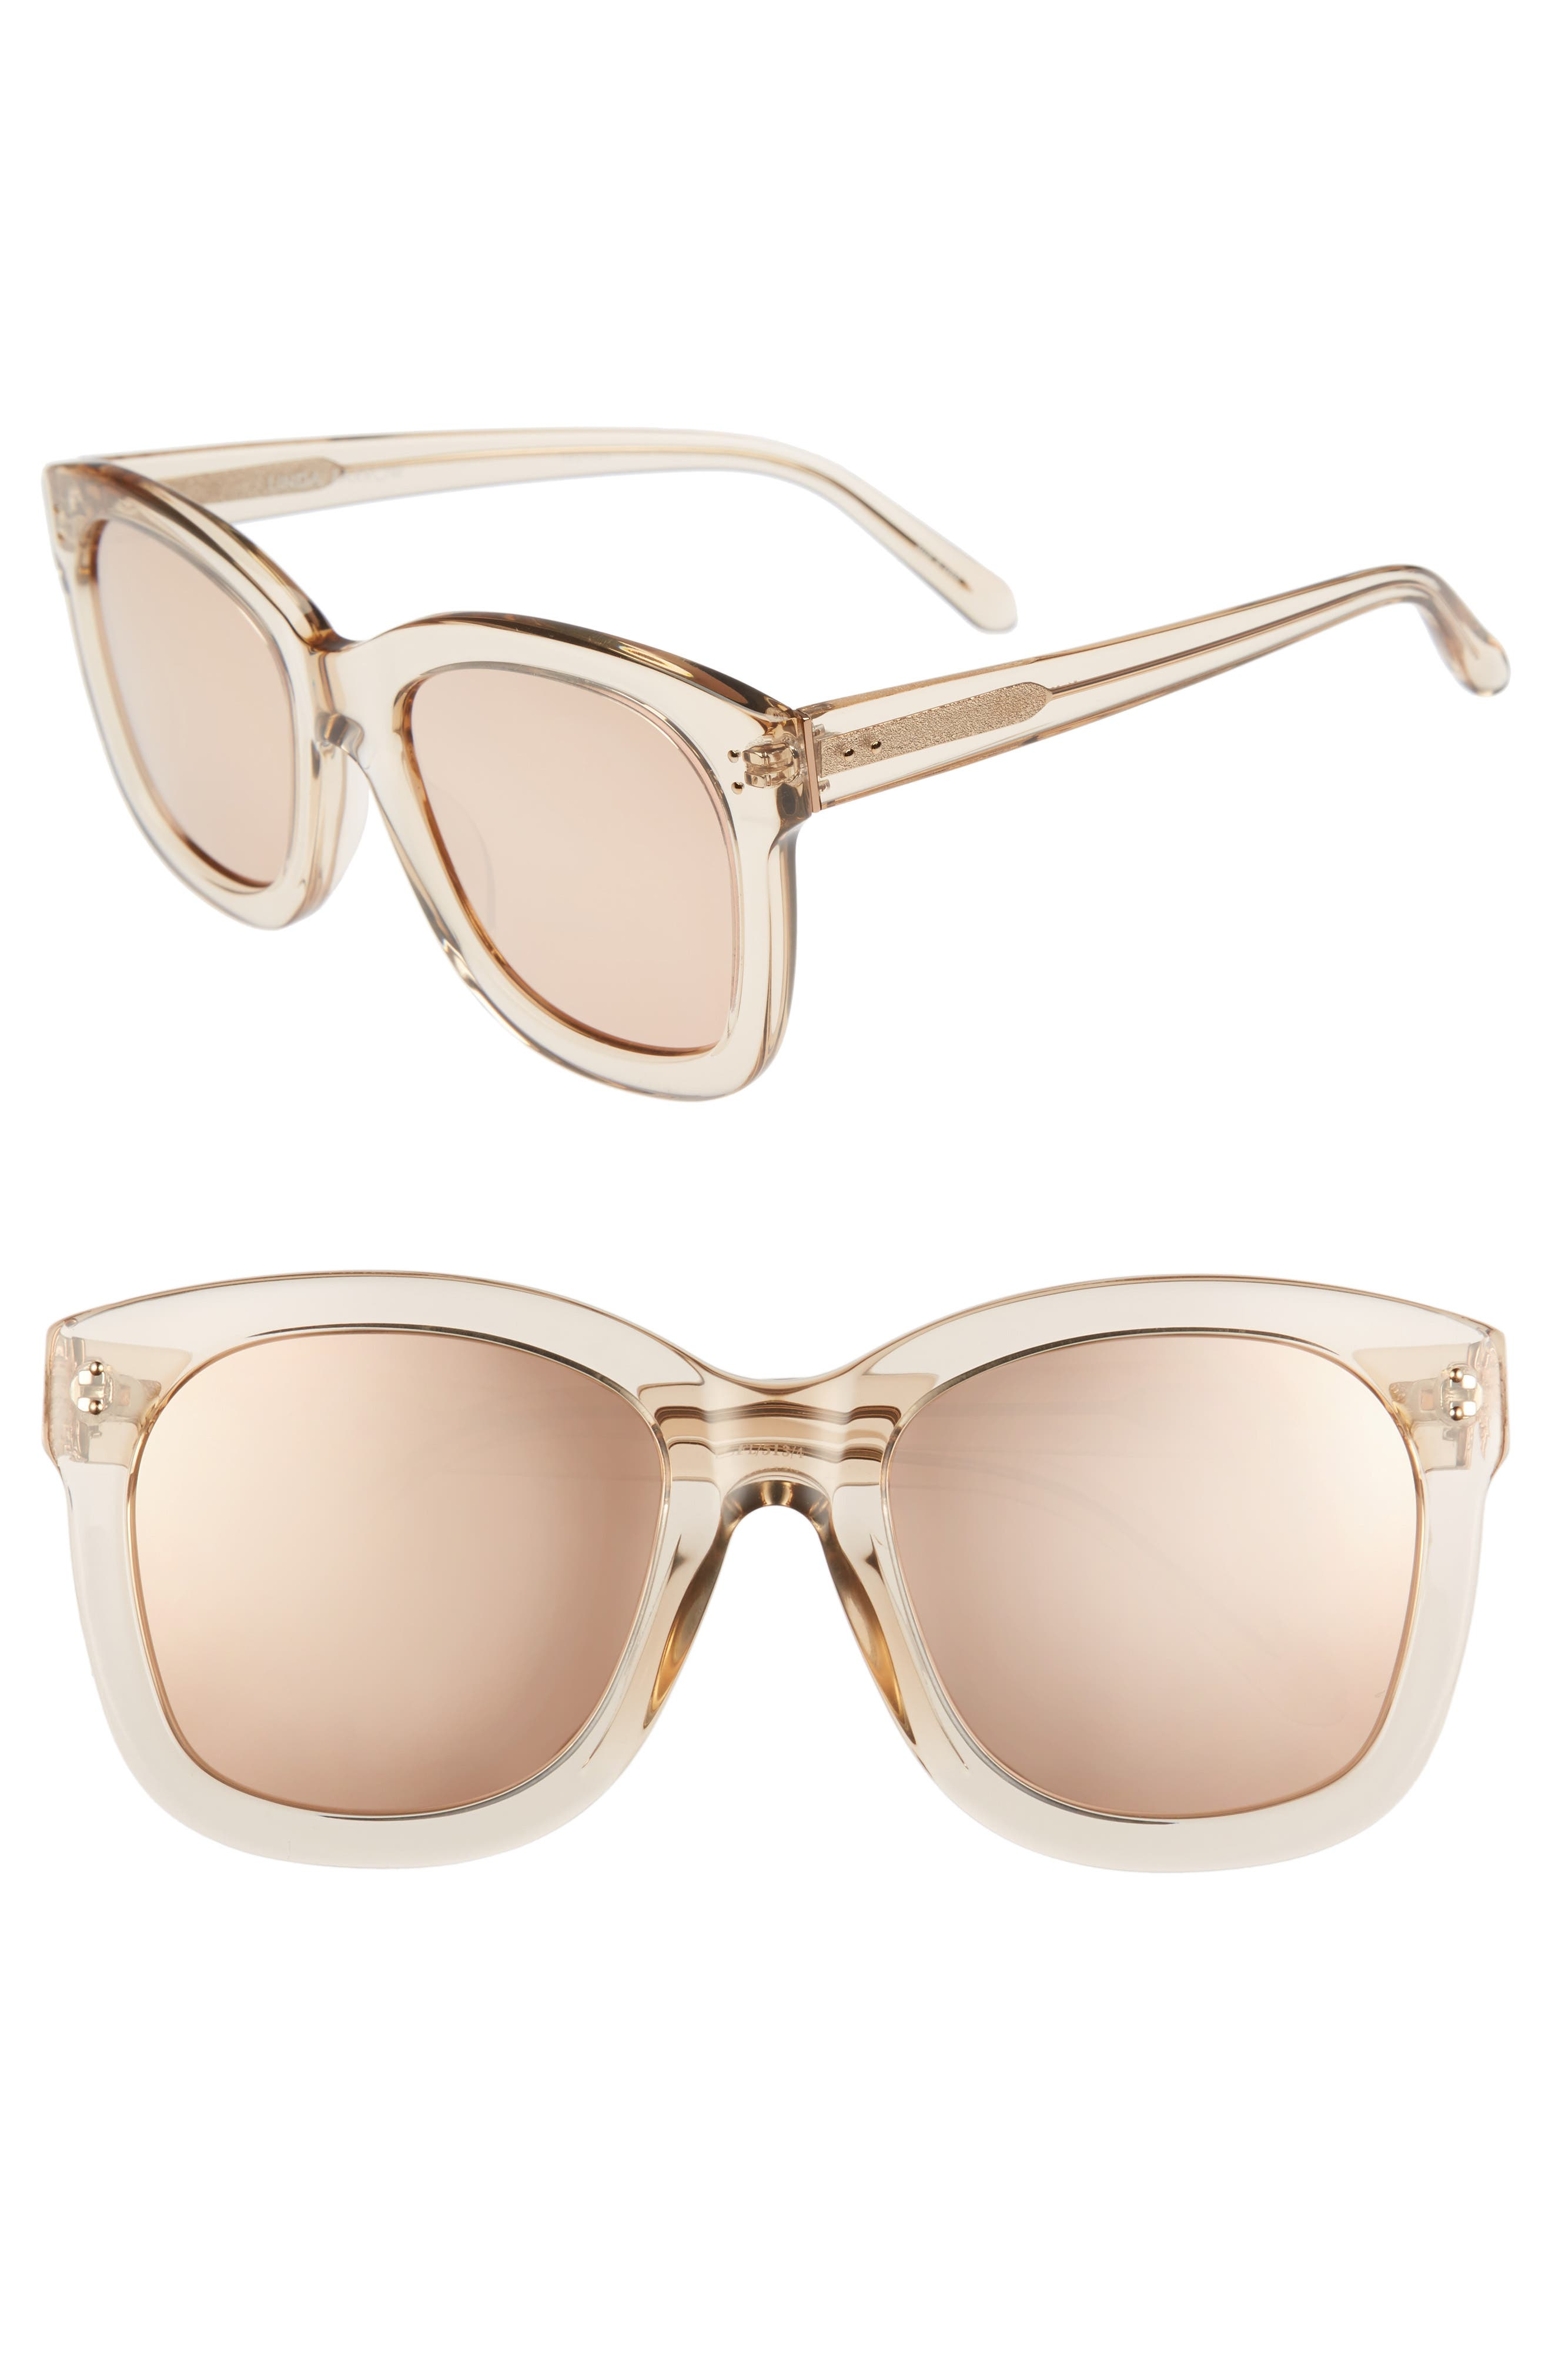 56mm Mirrored Sunglasses,                         Main,                         color, Ash/ Rose Gold